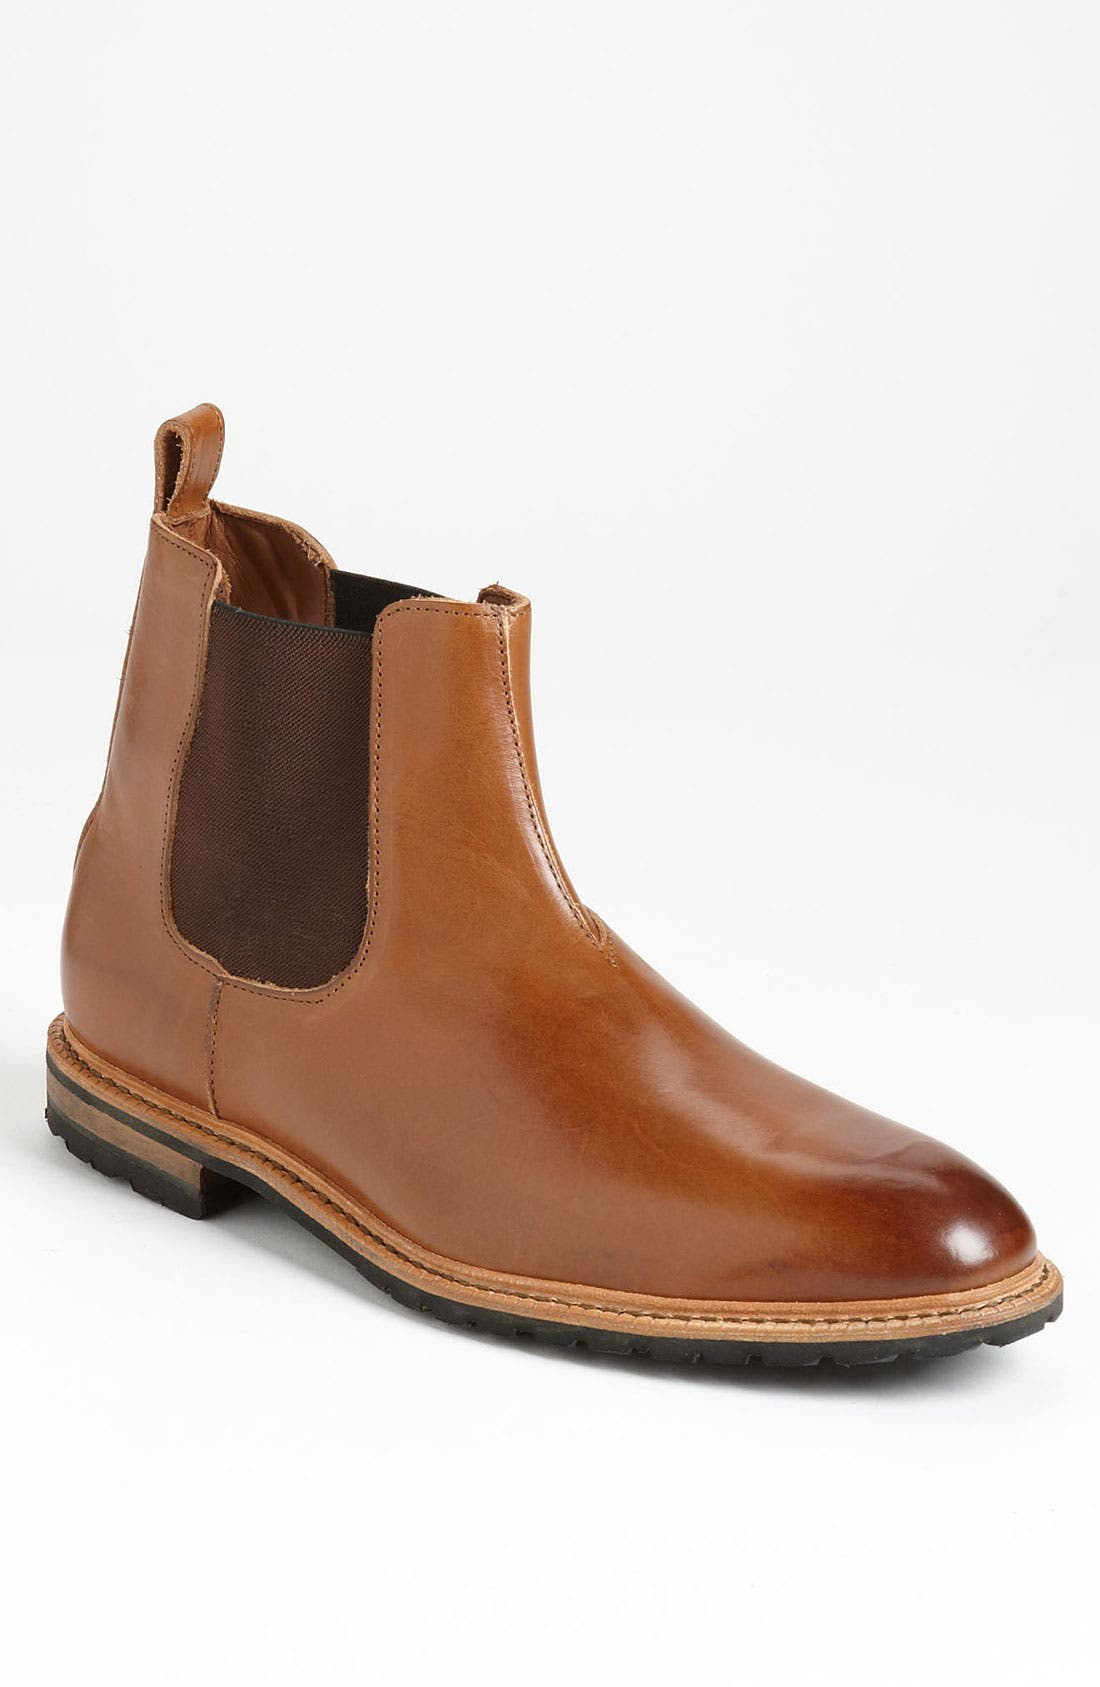 Alternate Image 1 Selected - Allen Edmonds 'Ashbury' Chelsea Boot (Online Only) (Men)